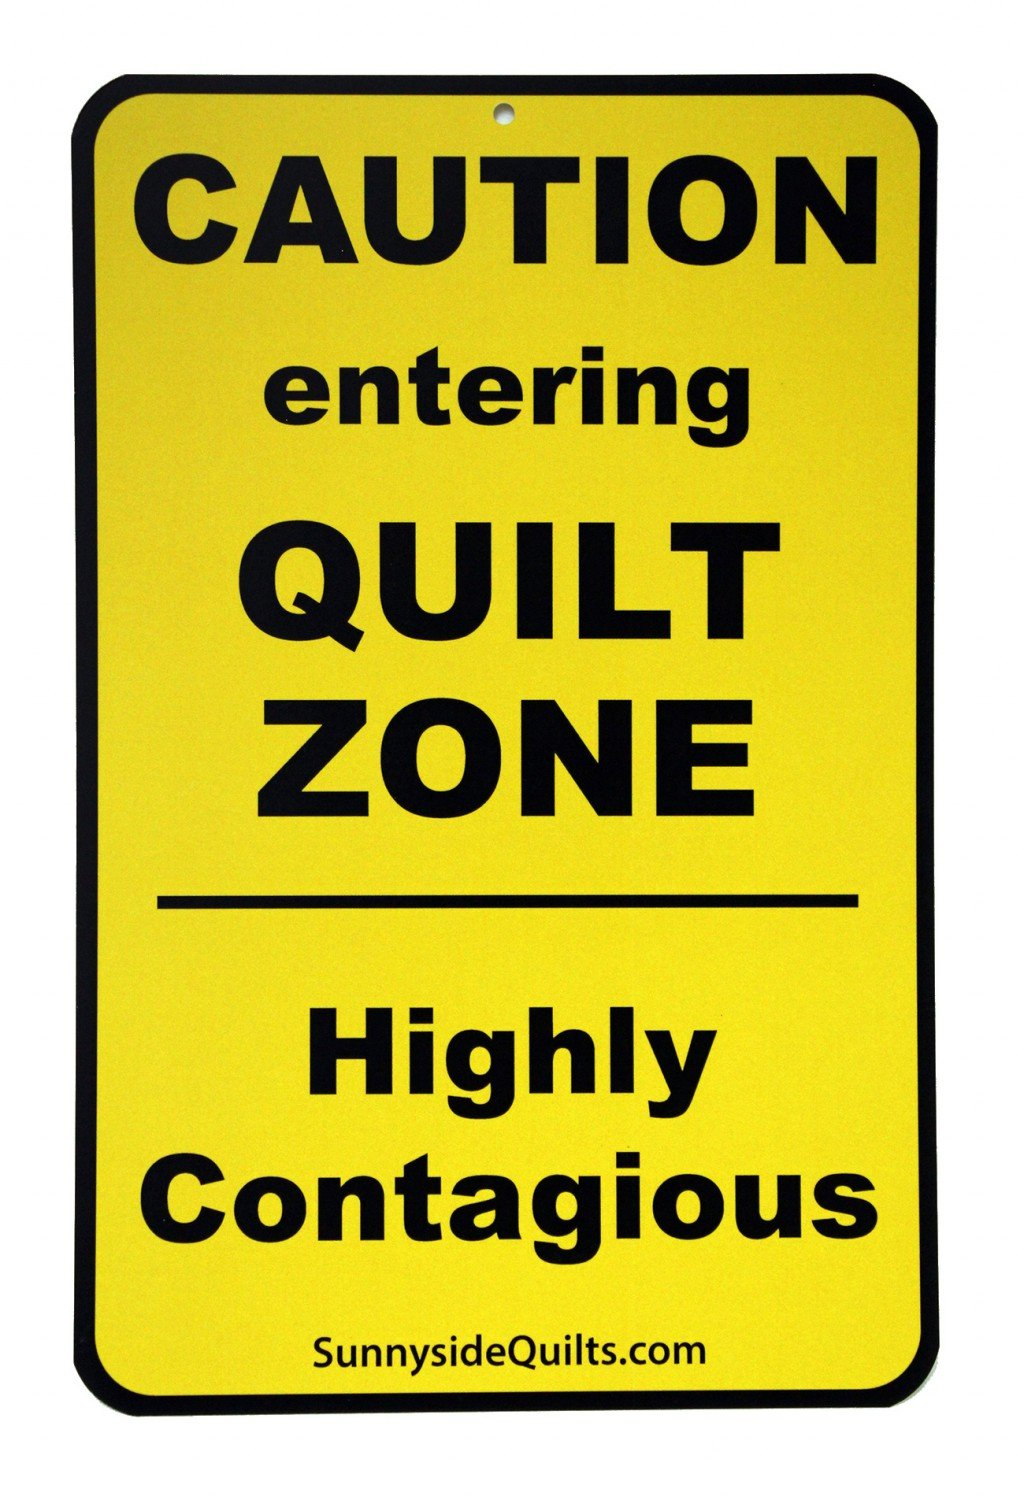 Sign - Caution - Entering Quilt Zone